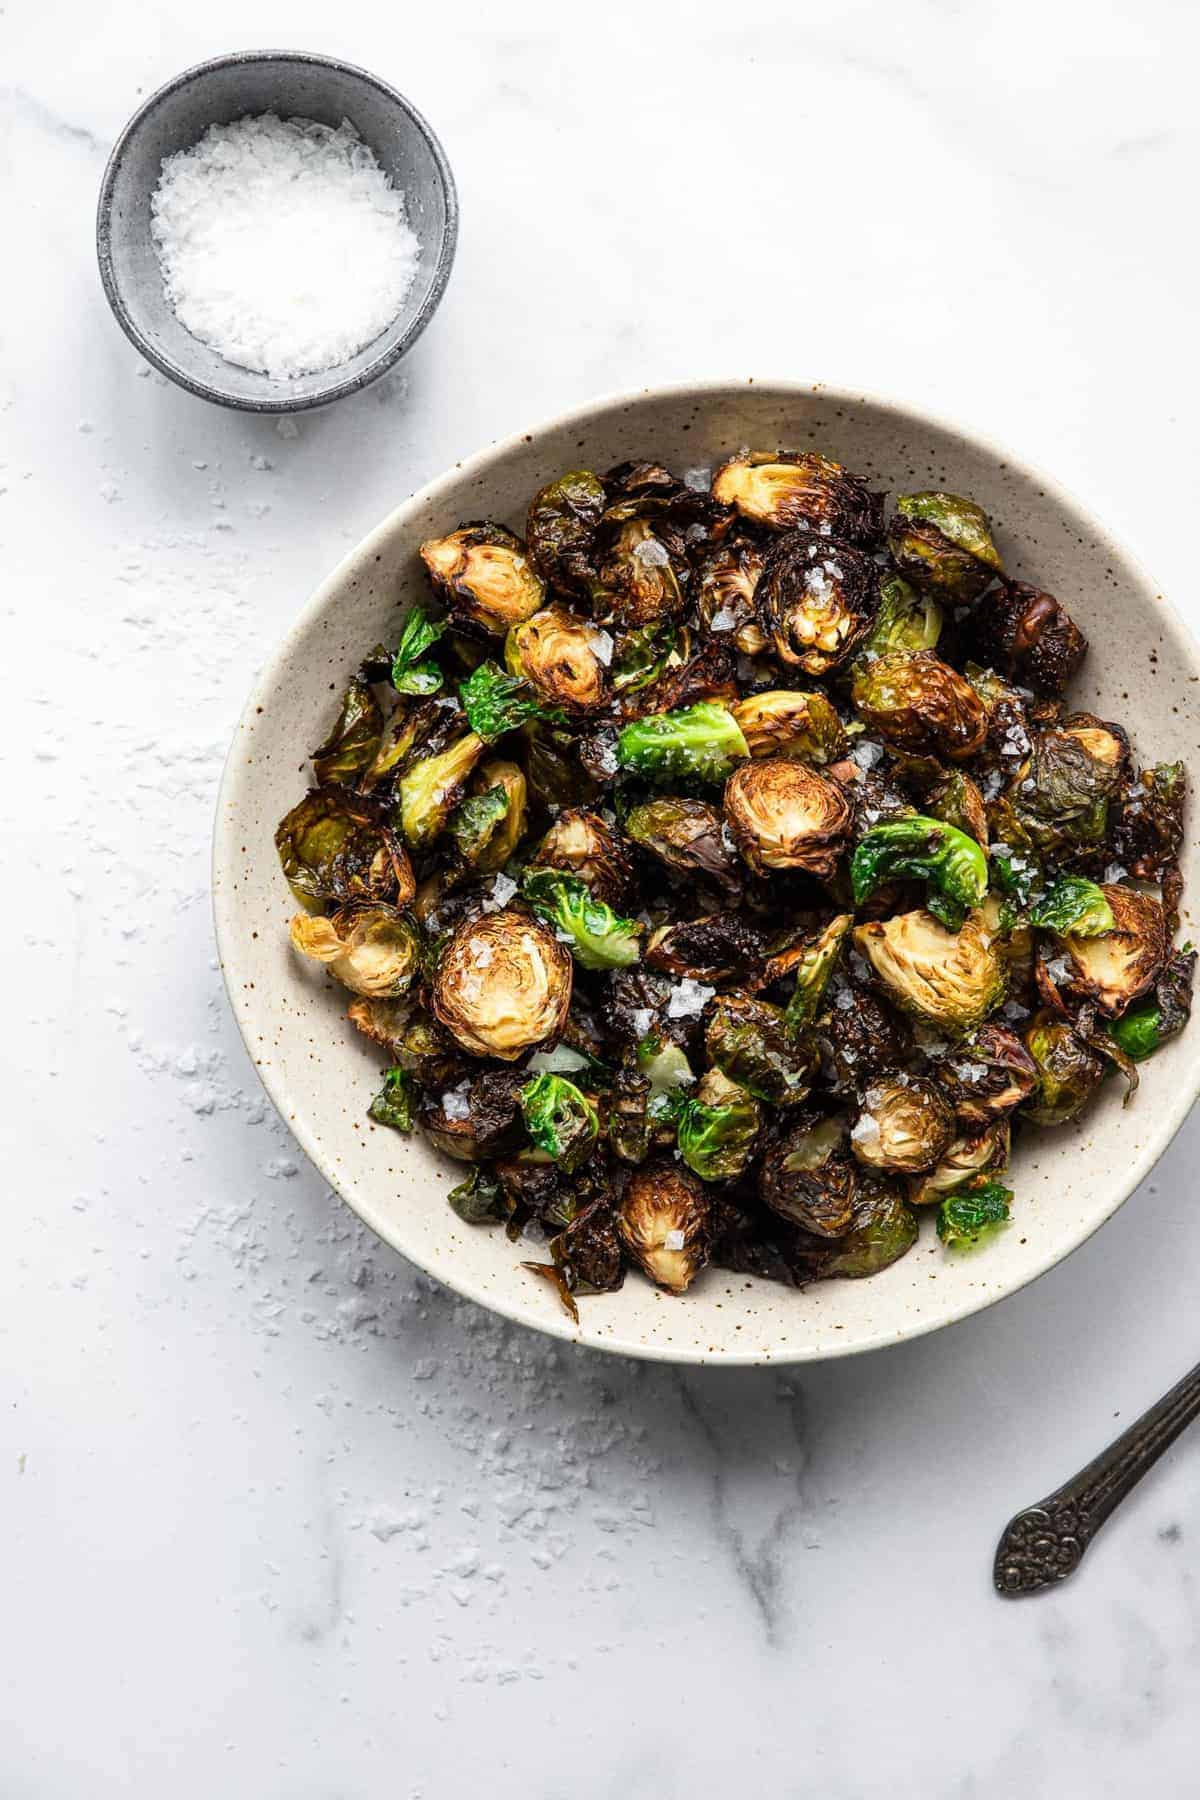 air fryer brussel sprouts in a bowl on a table